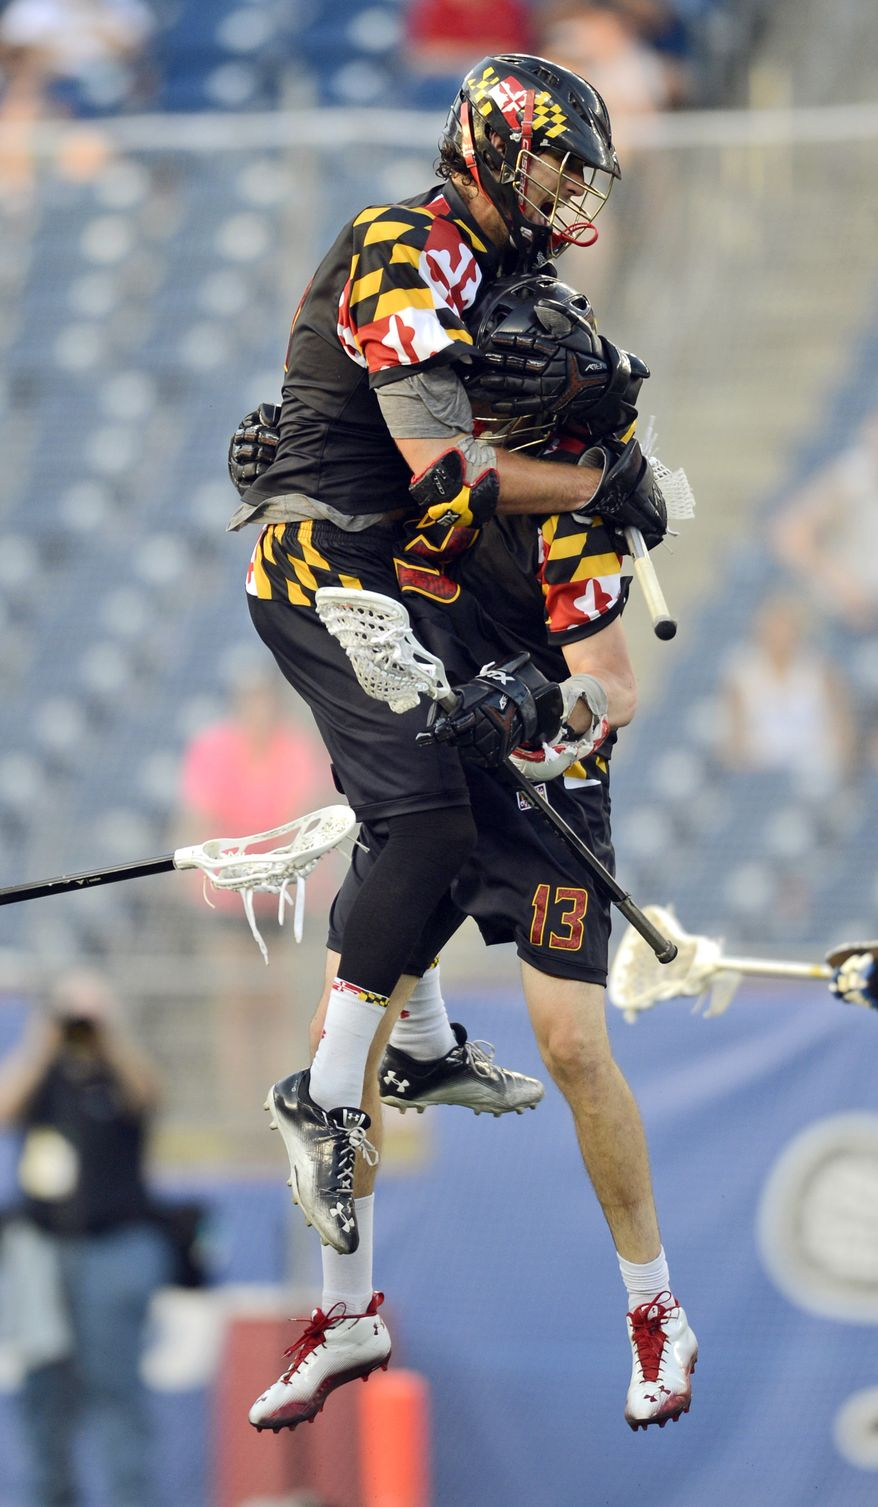 Maryland's Kevin Cooper, top and Owen Blye (13) celebrate a fourth-quarter goal in their semifinal game against Duke in the NCAA Division I college men's lacrosse championship at Gillette Stadium in Foxborough, Mass., Saturday, May 26, 2012. (AP Photo/Gretchen Ertl)